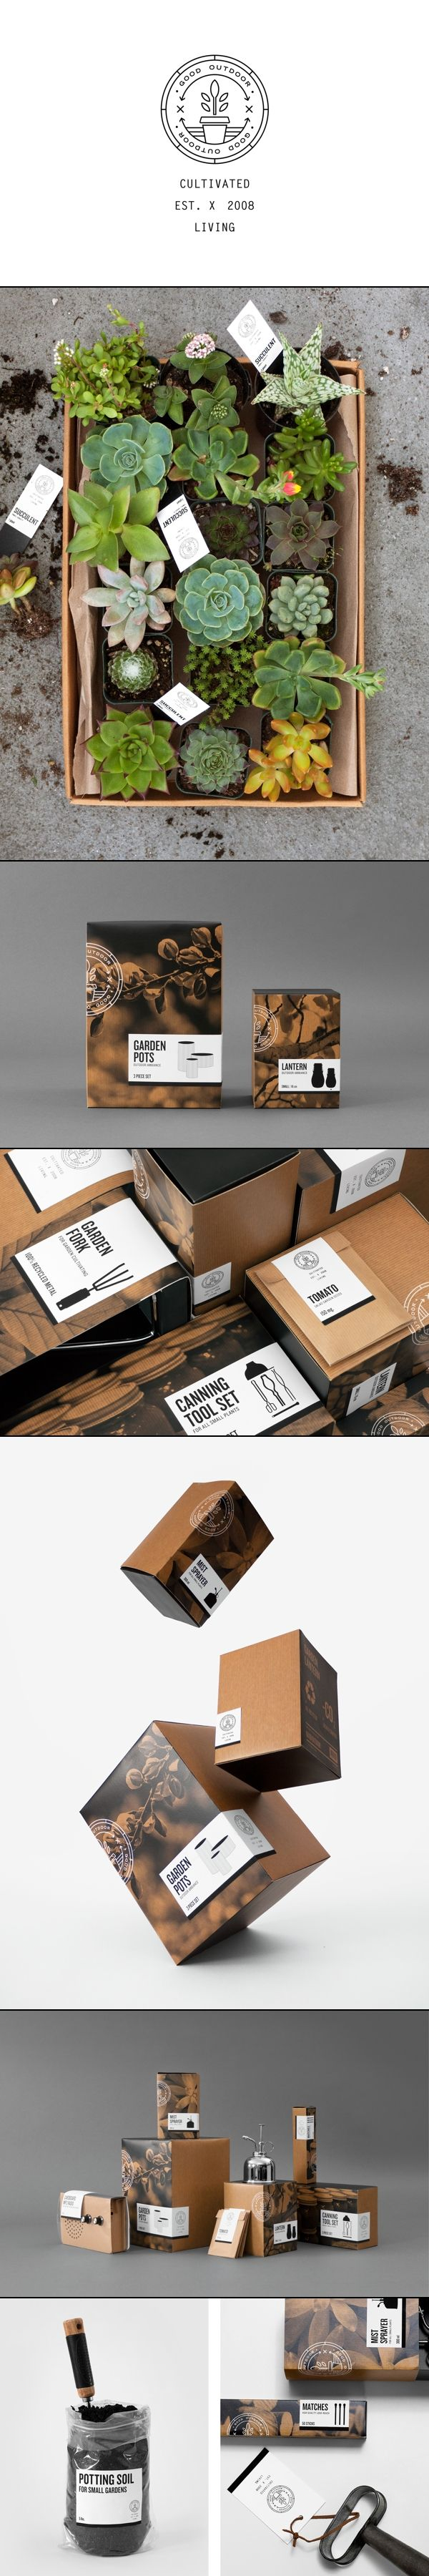 How about this one Julie? Good Outdoor | The Good Store | Herrera, Carriedo, Giboin, Huang. Perfect #garden #branding #packaging PD